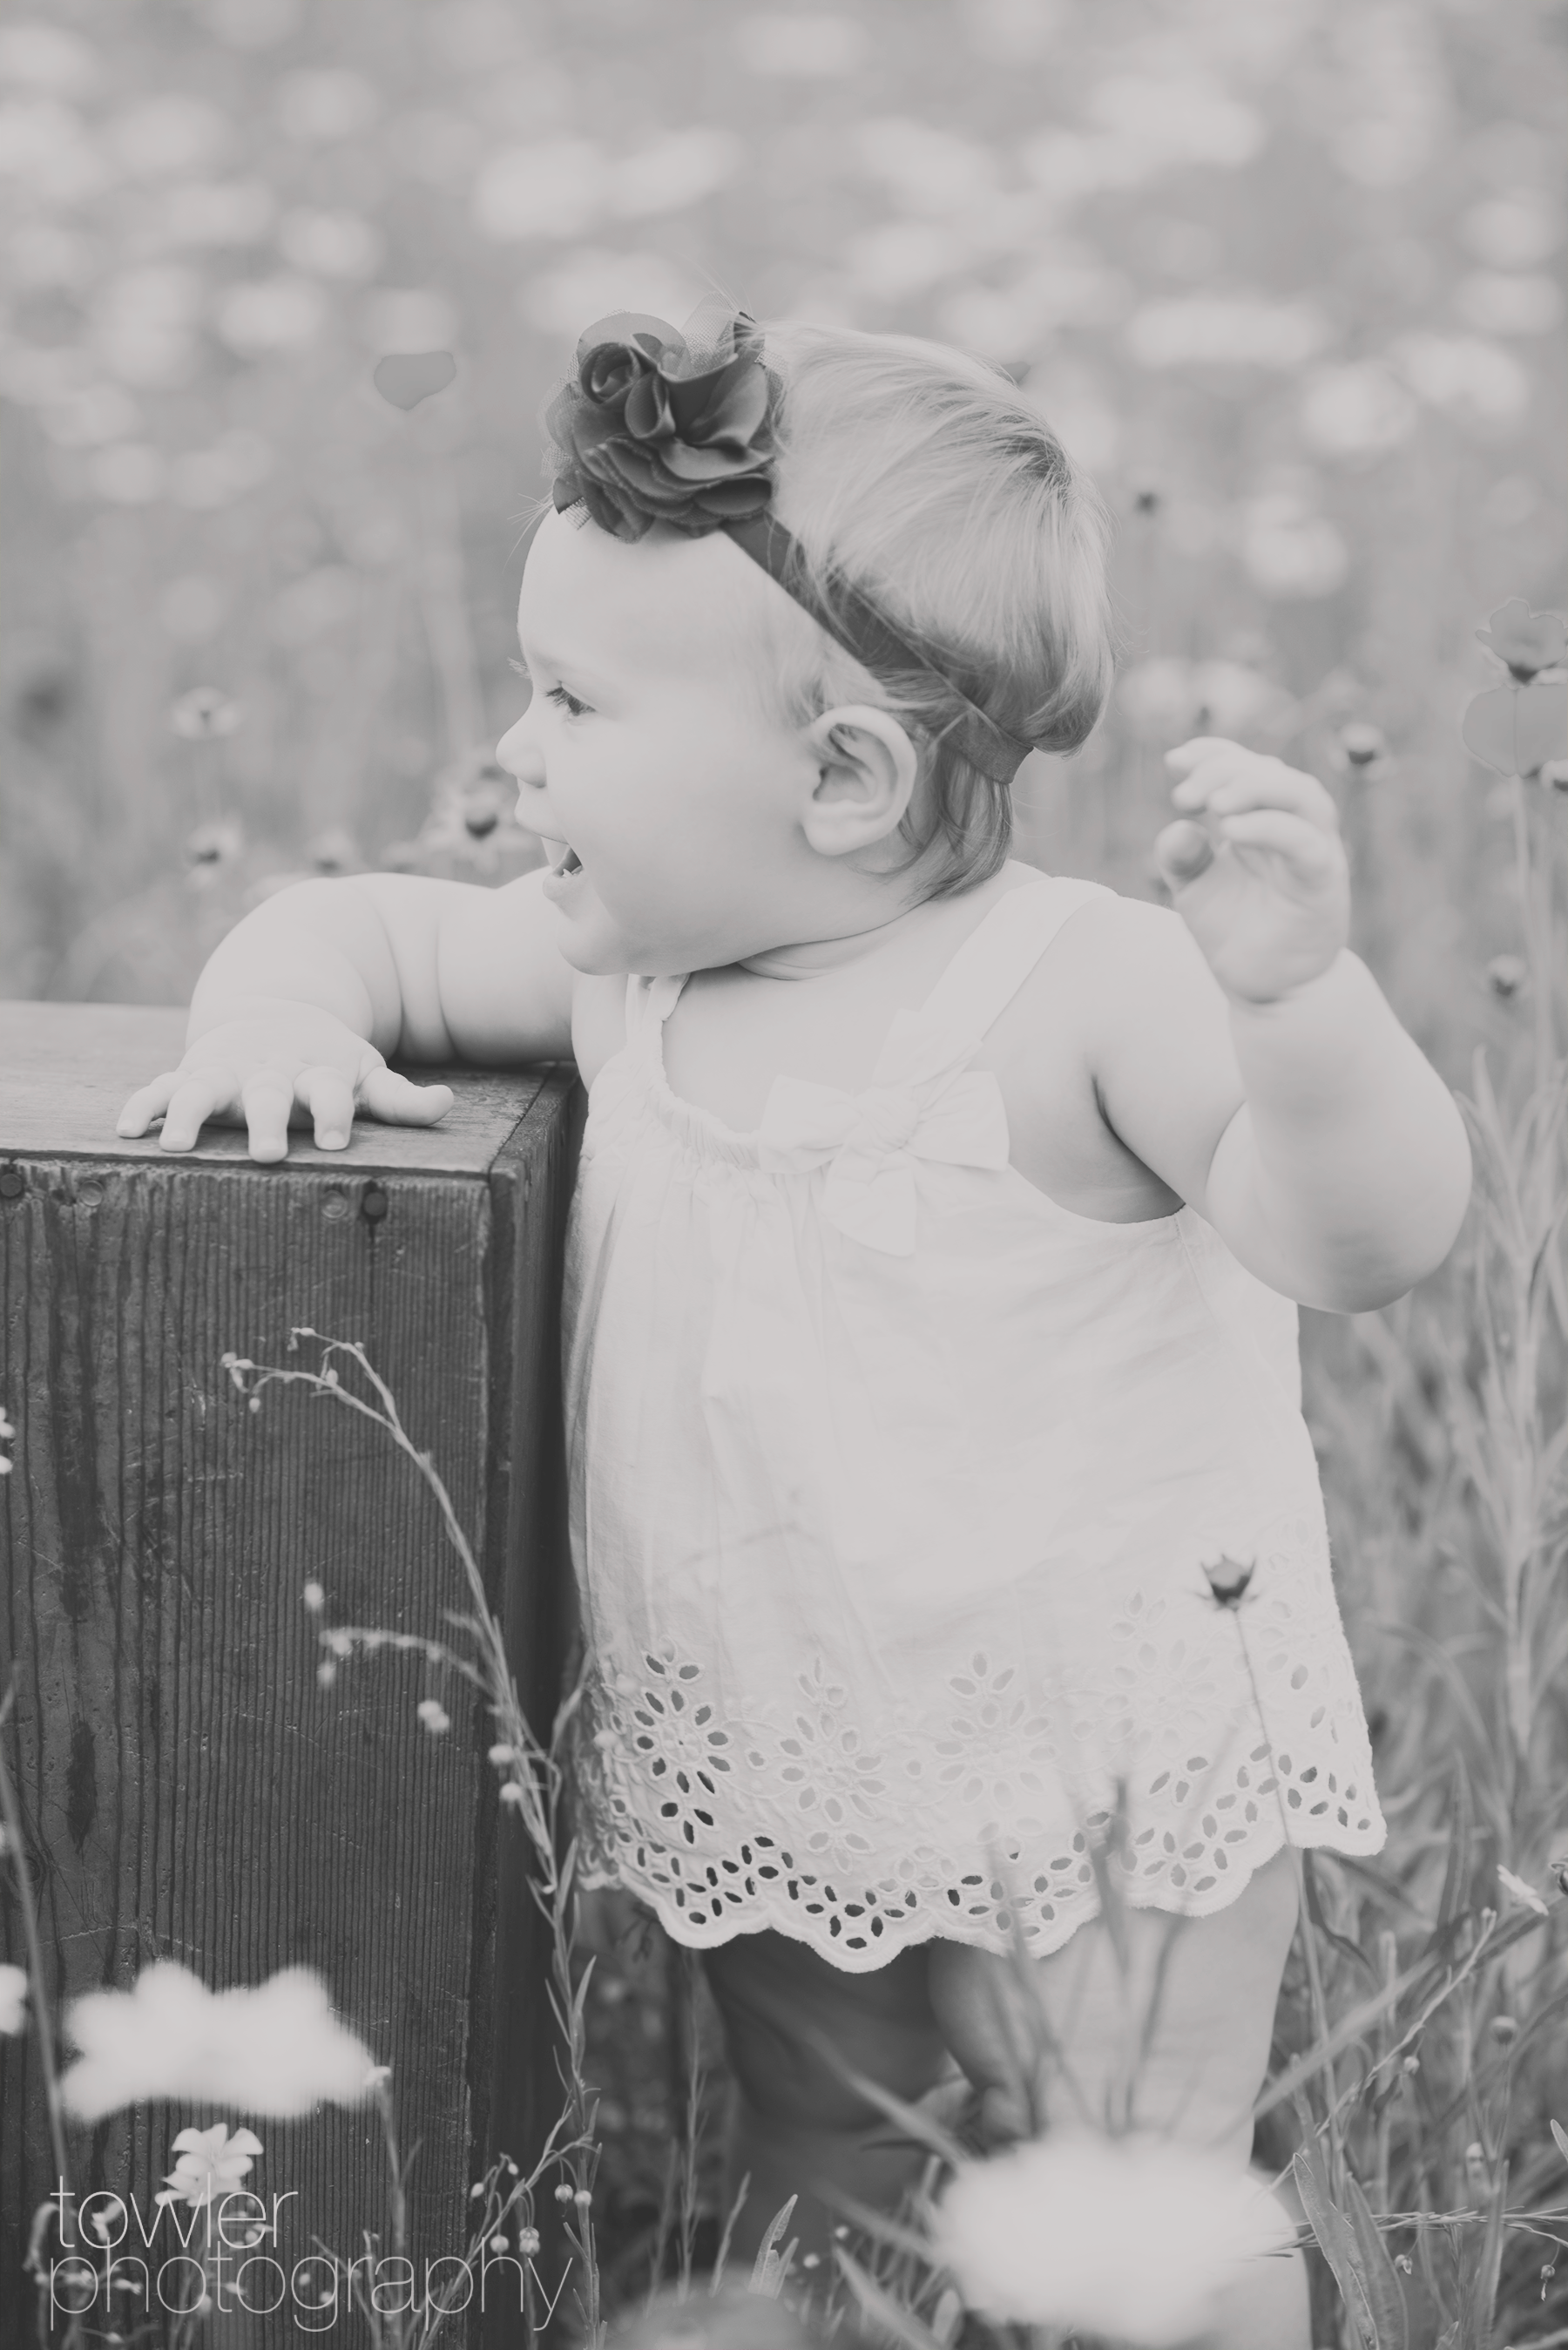 TowlerPhotography_One_Year_Annie_0119